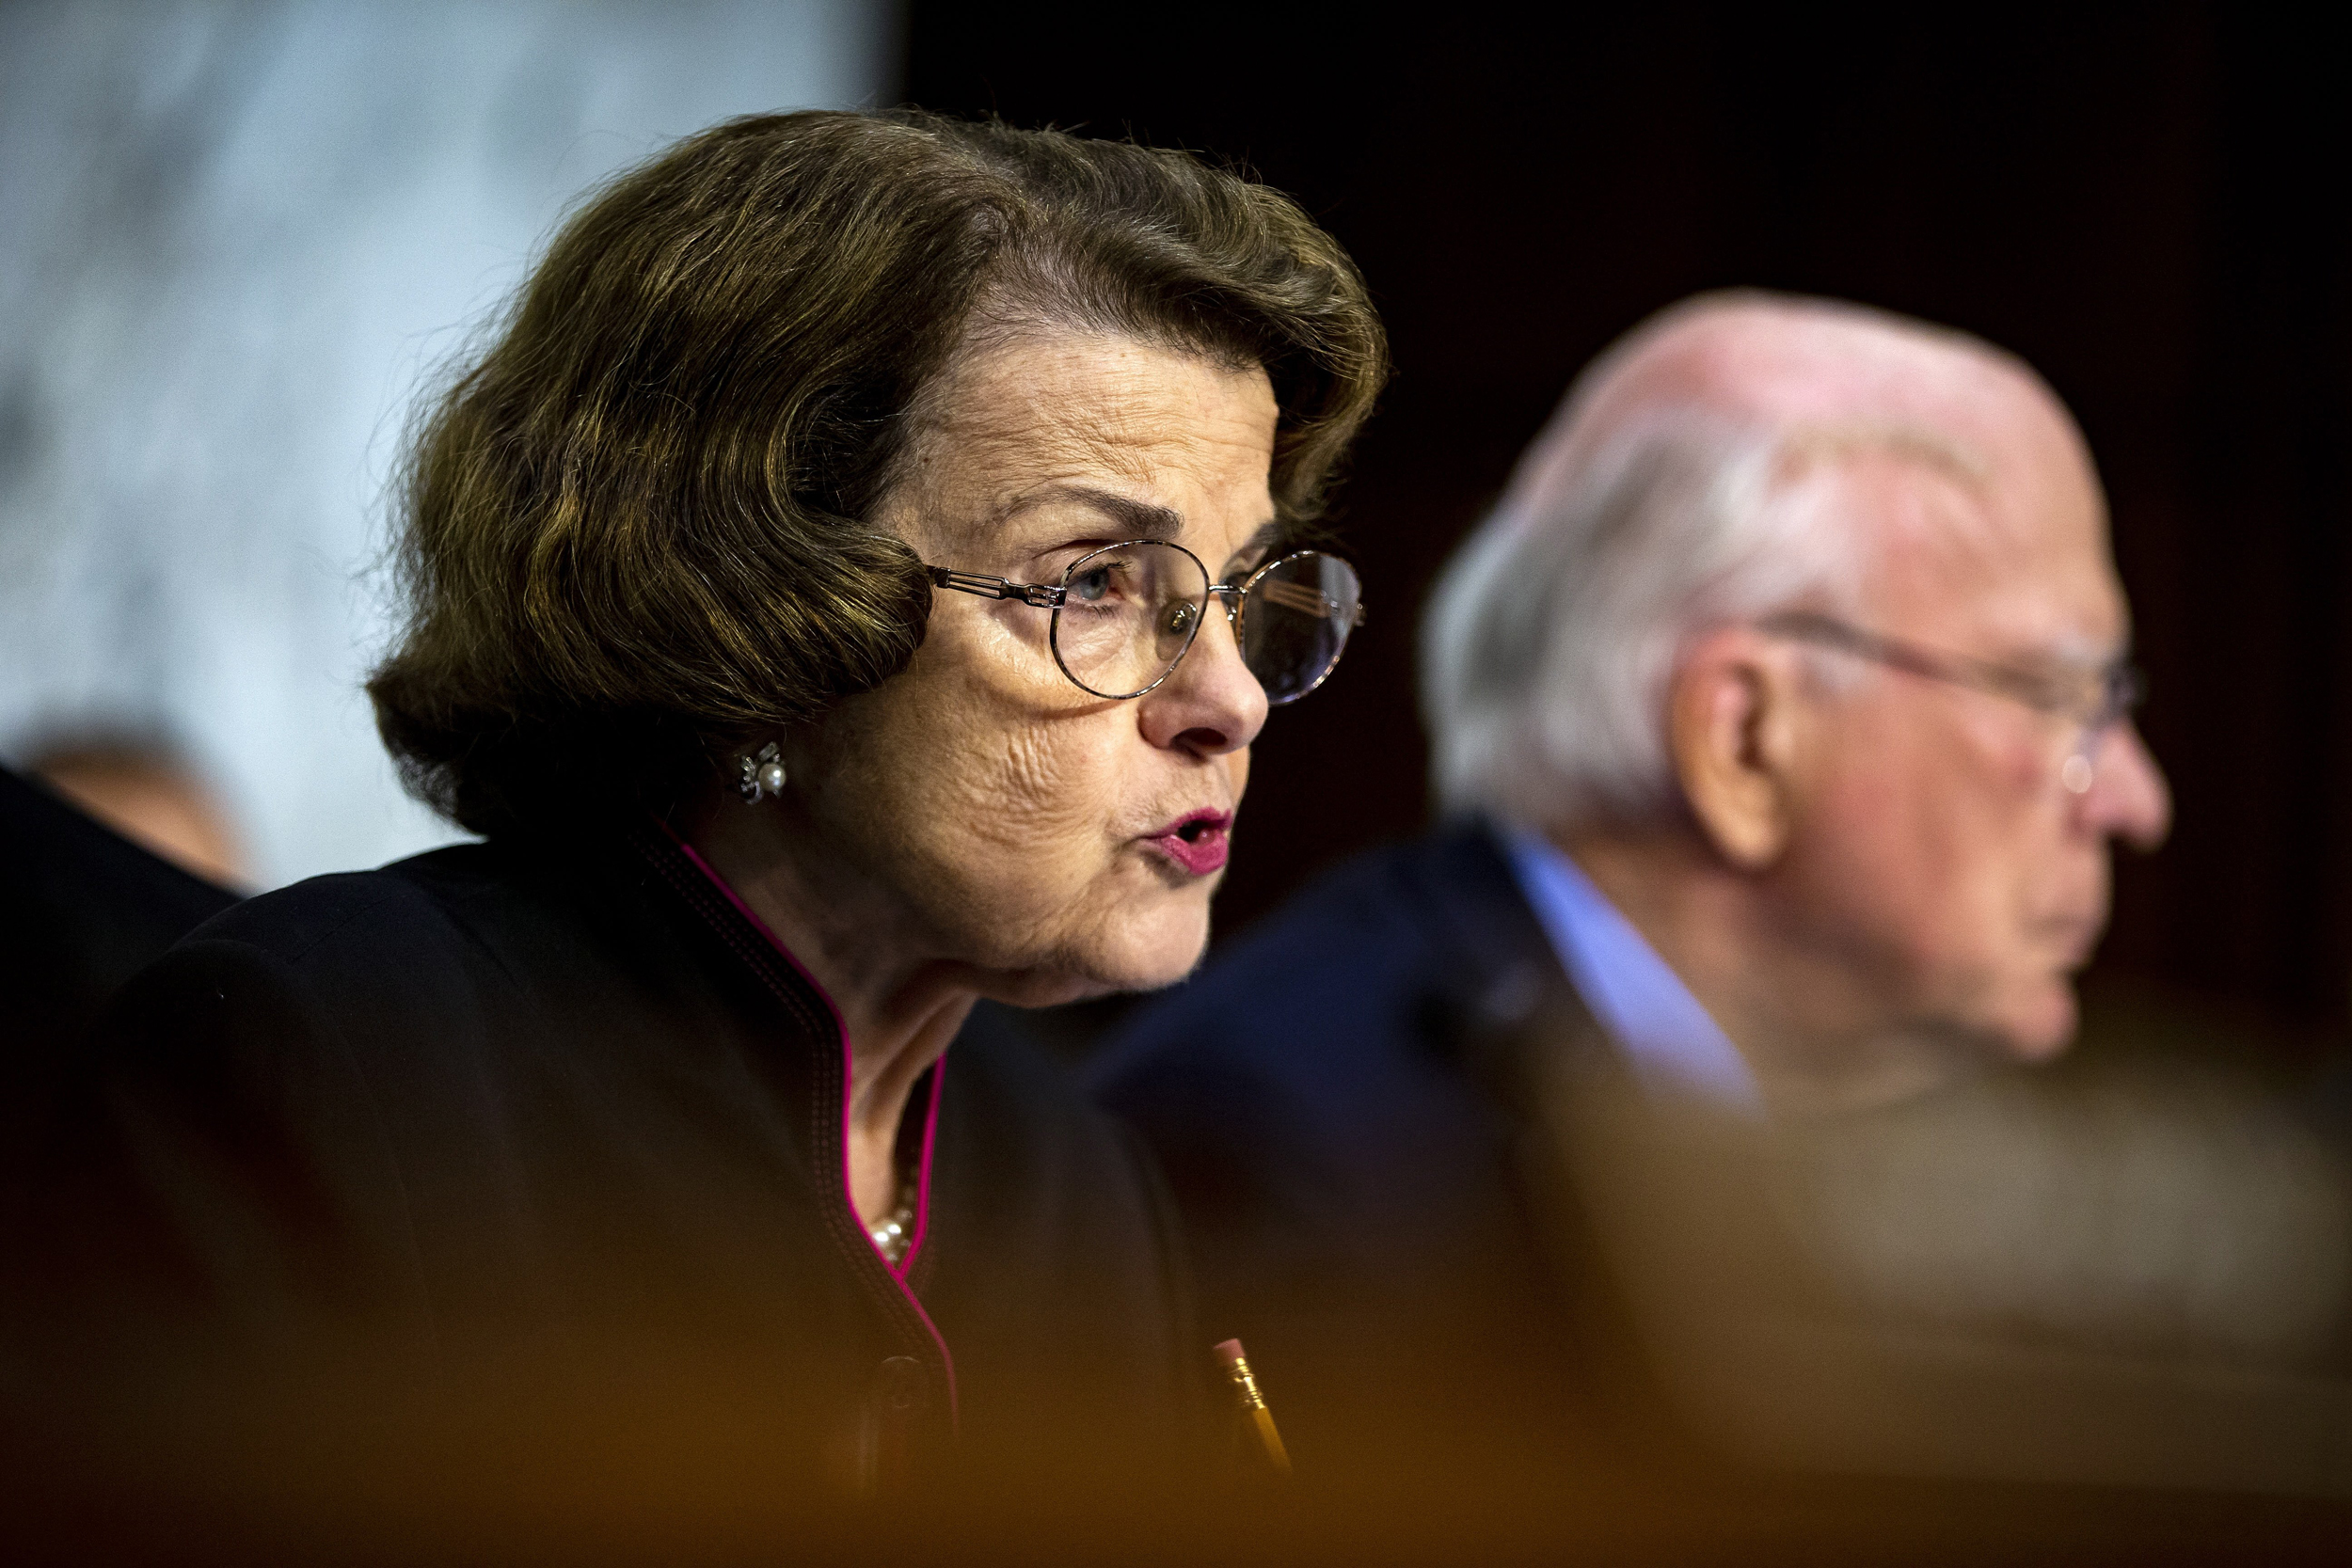 california democrats dianne feinstein snub sends a strong signal to liberal candidates nationwide california democrats dianne feinstein snub sends a strong signal to liberal candidates nationwide